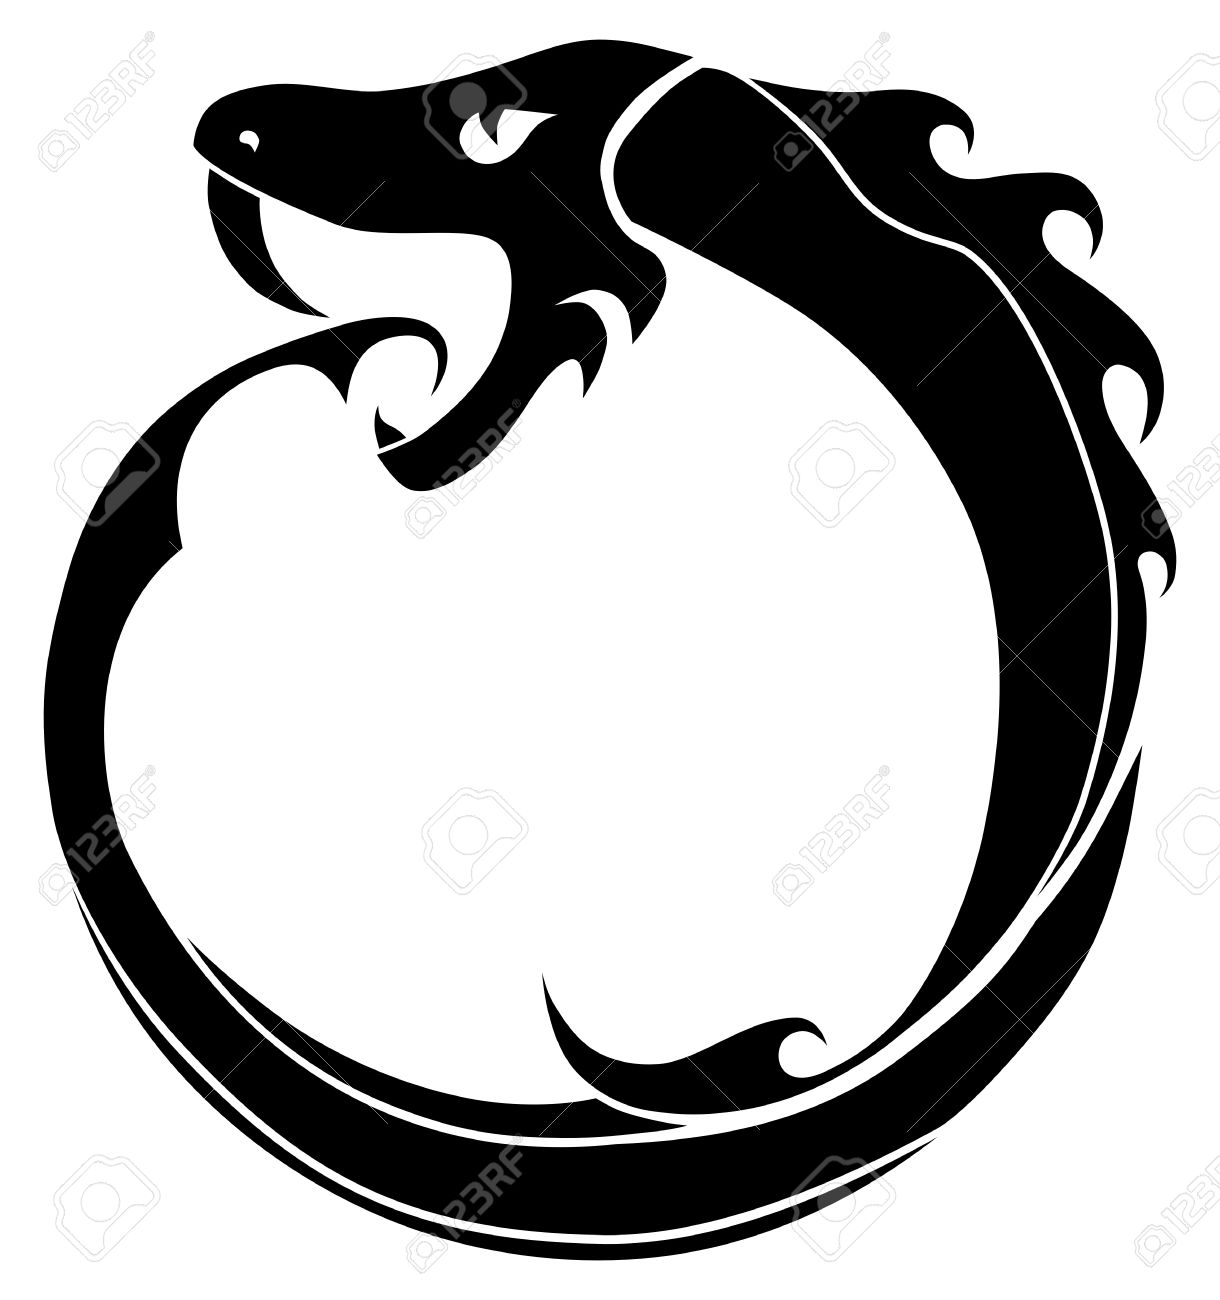 Ouroboros clipart #11, Download drawings